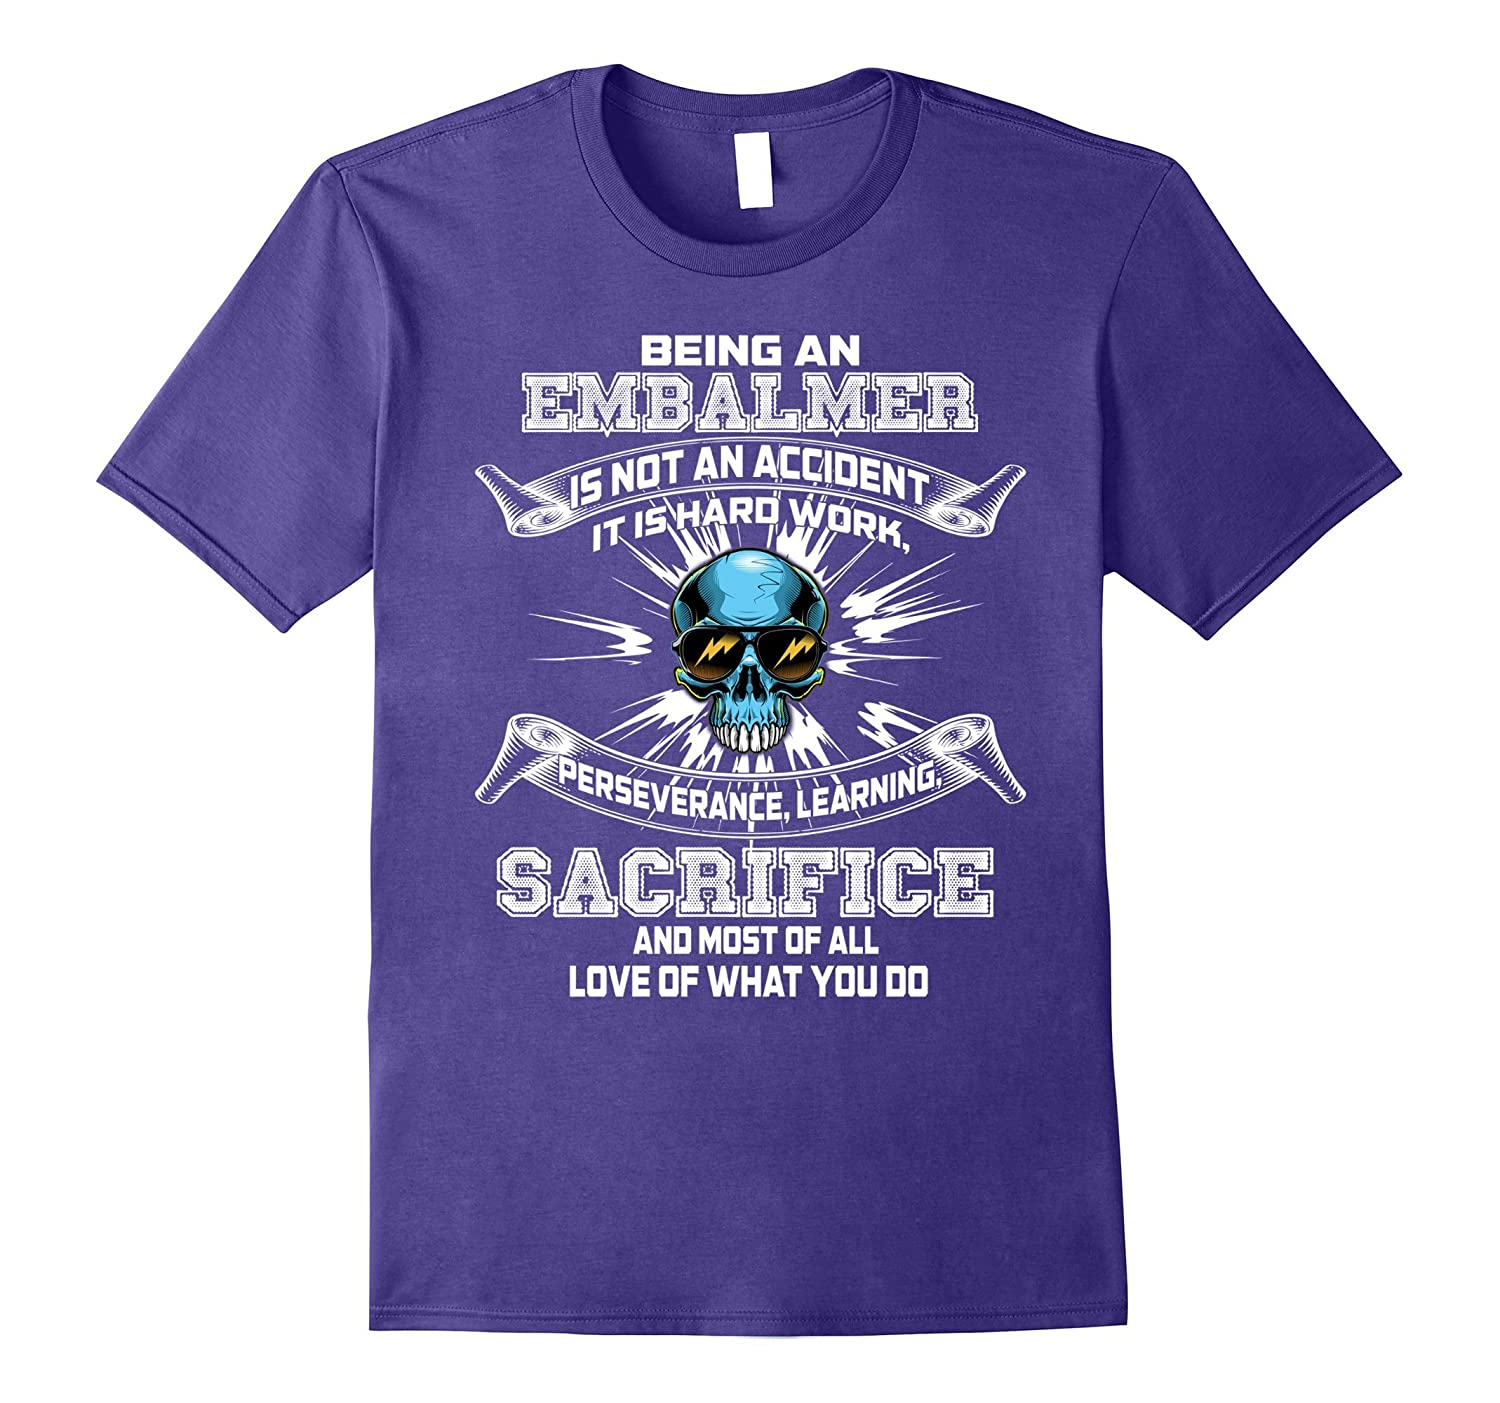 Being an Embalmer is not an accident it is hard work t-shirt-FL